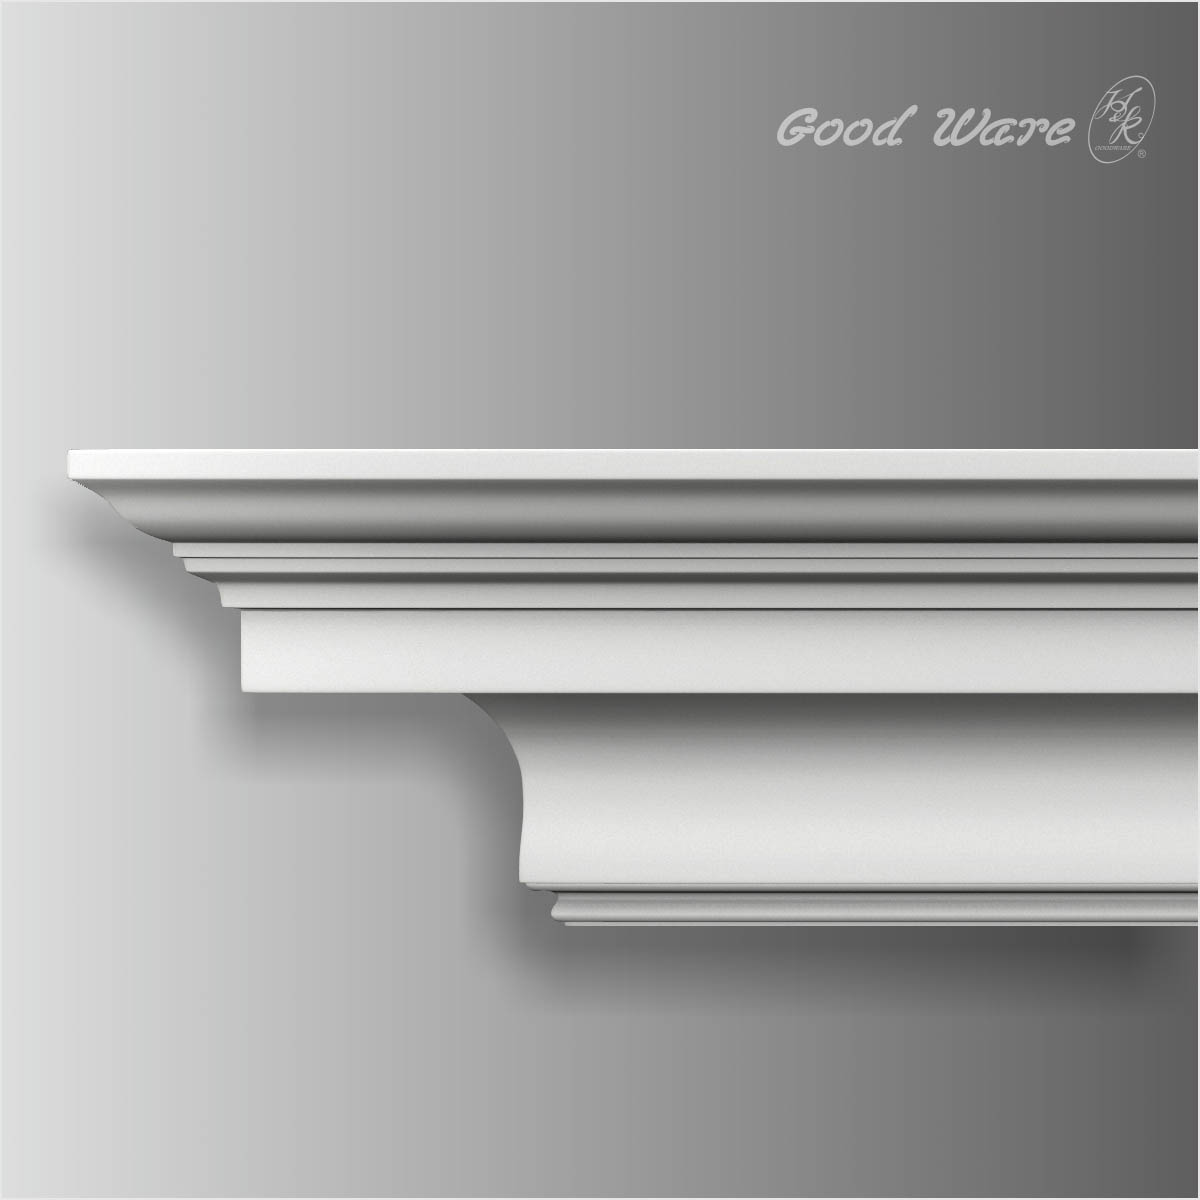 Polyurethane simple crown molding on ceiling